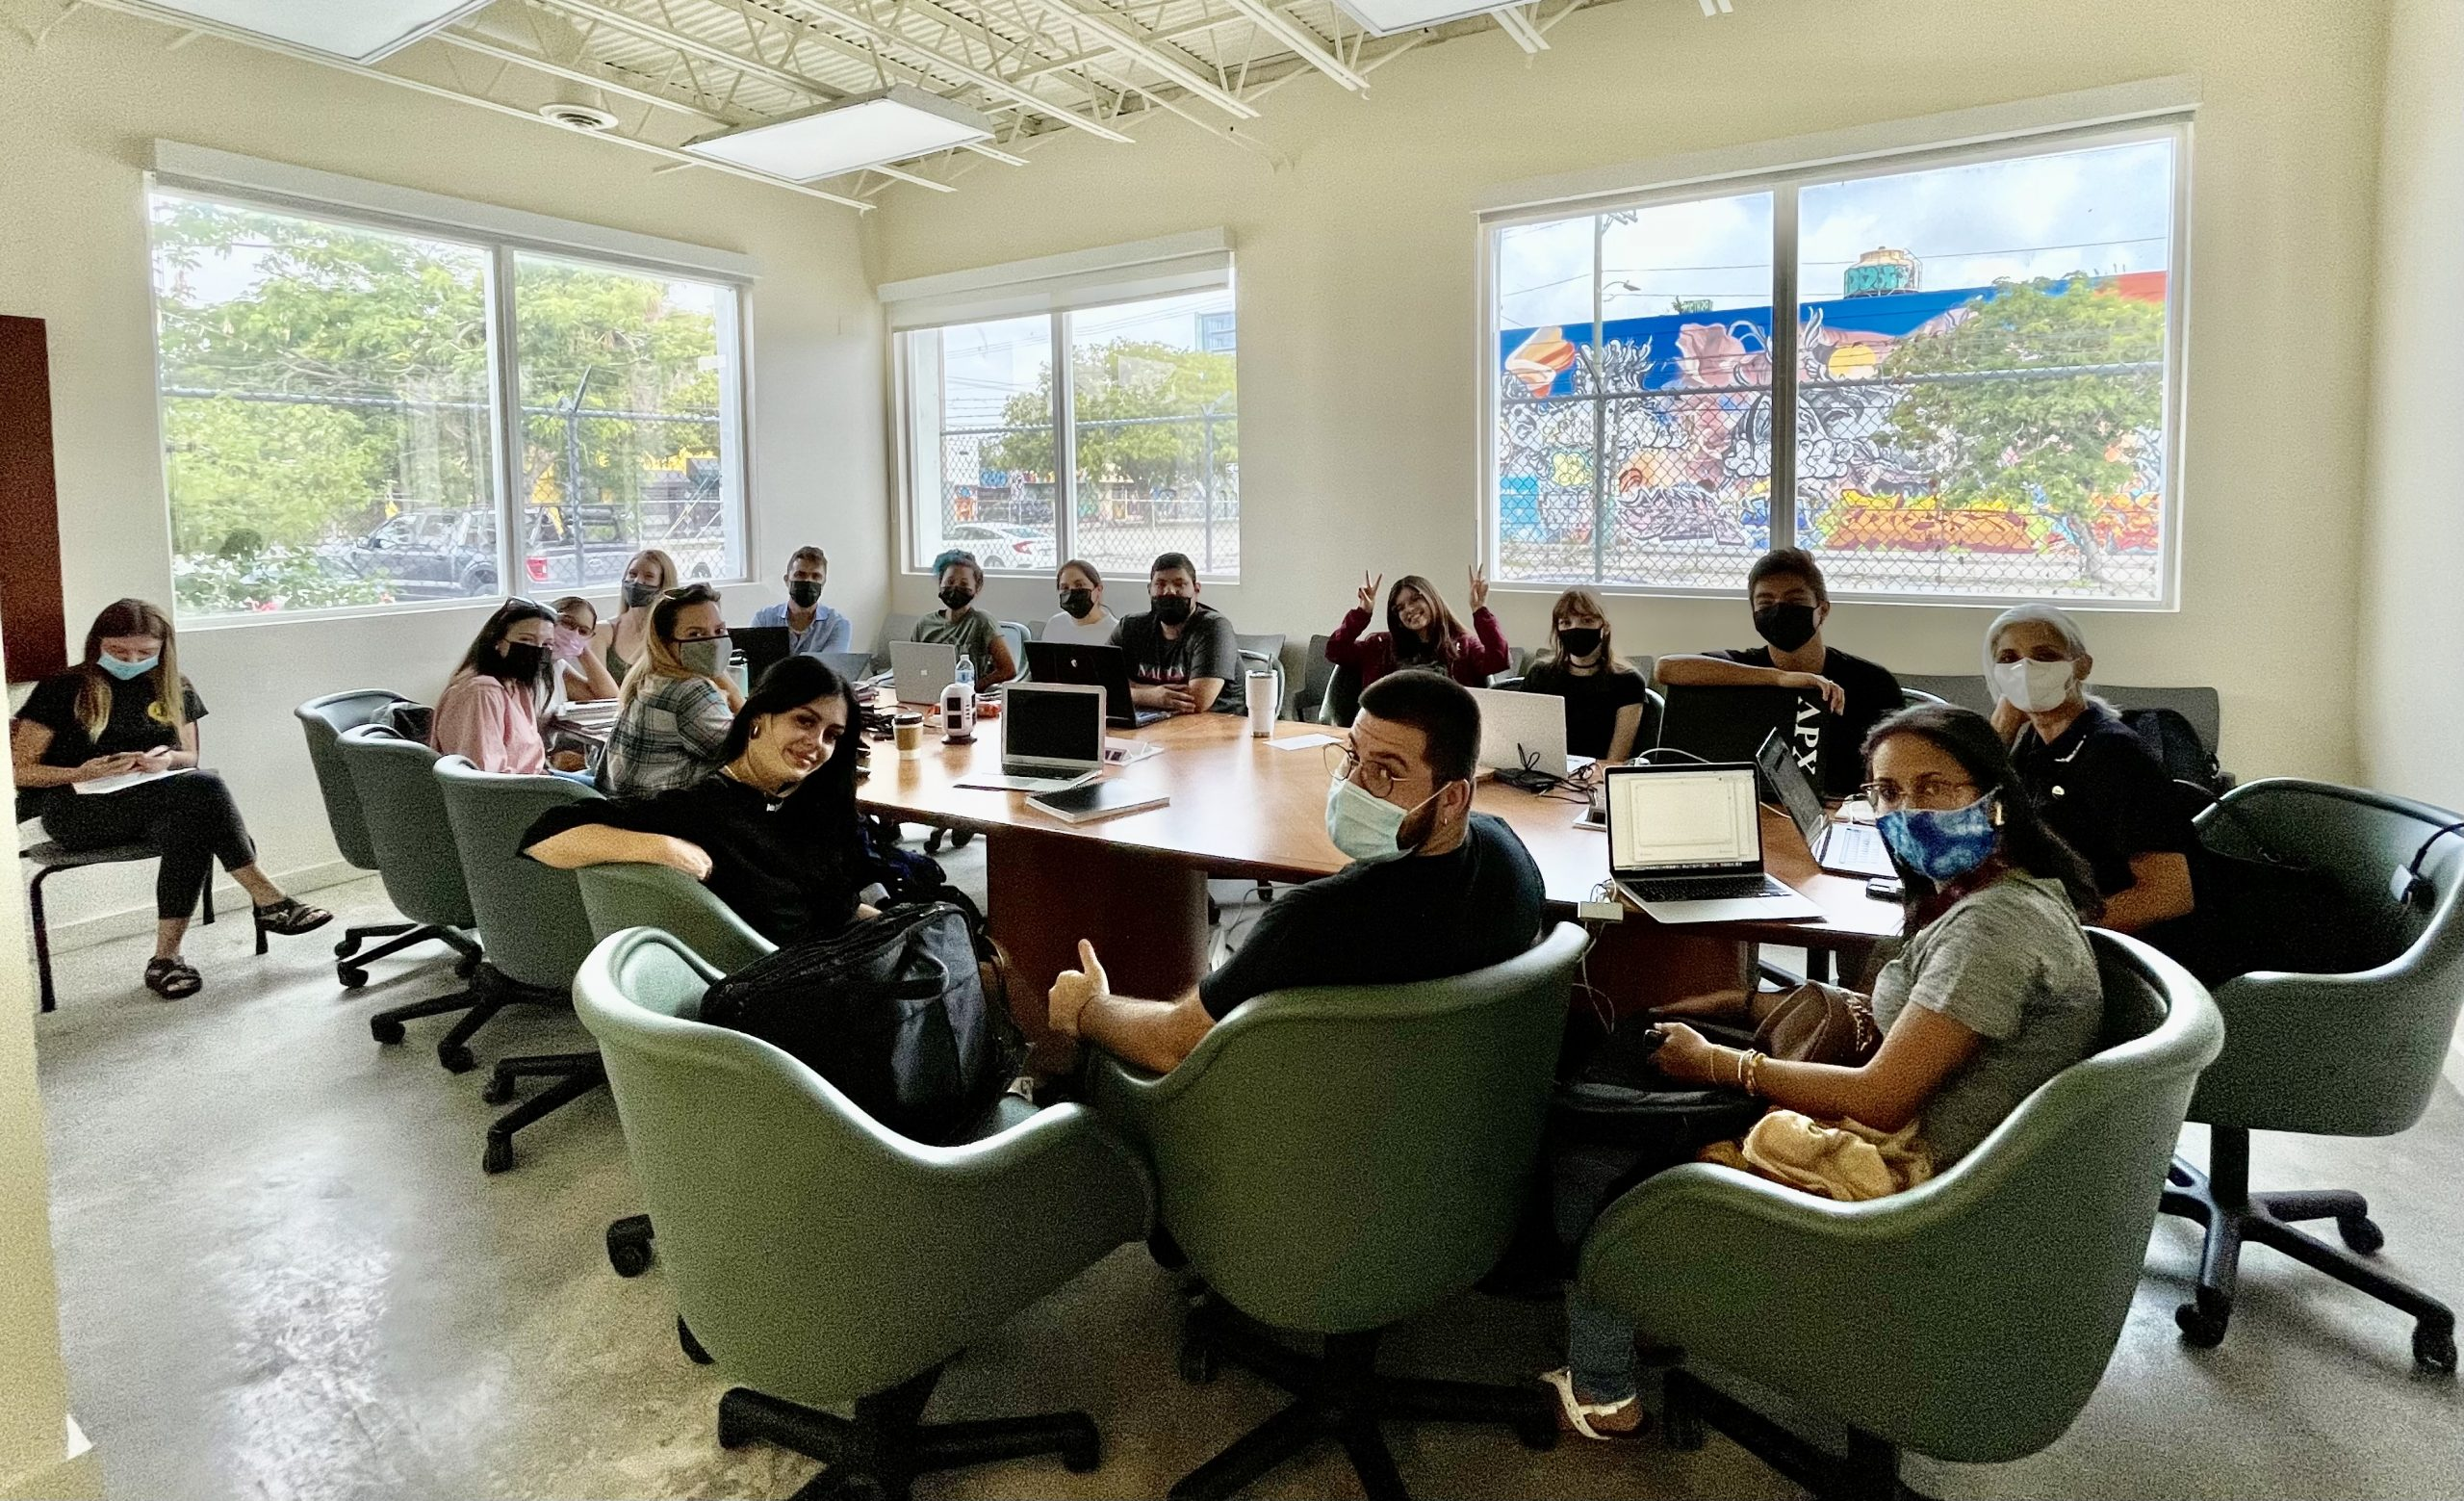 Image of students in the conference room with the windows open